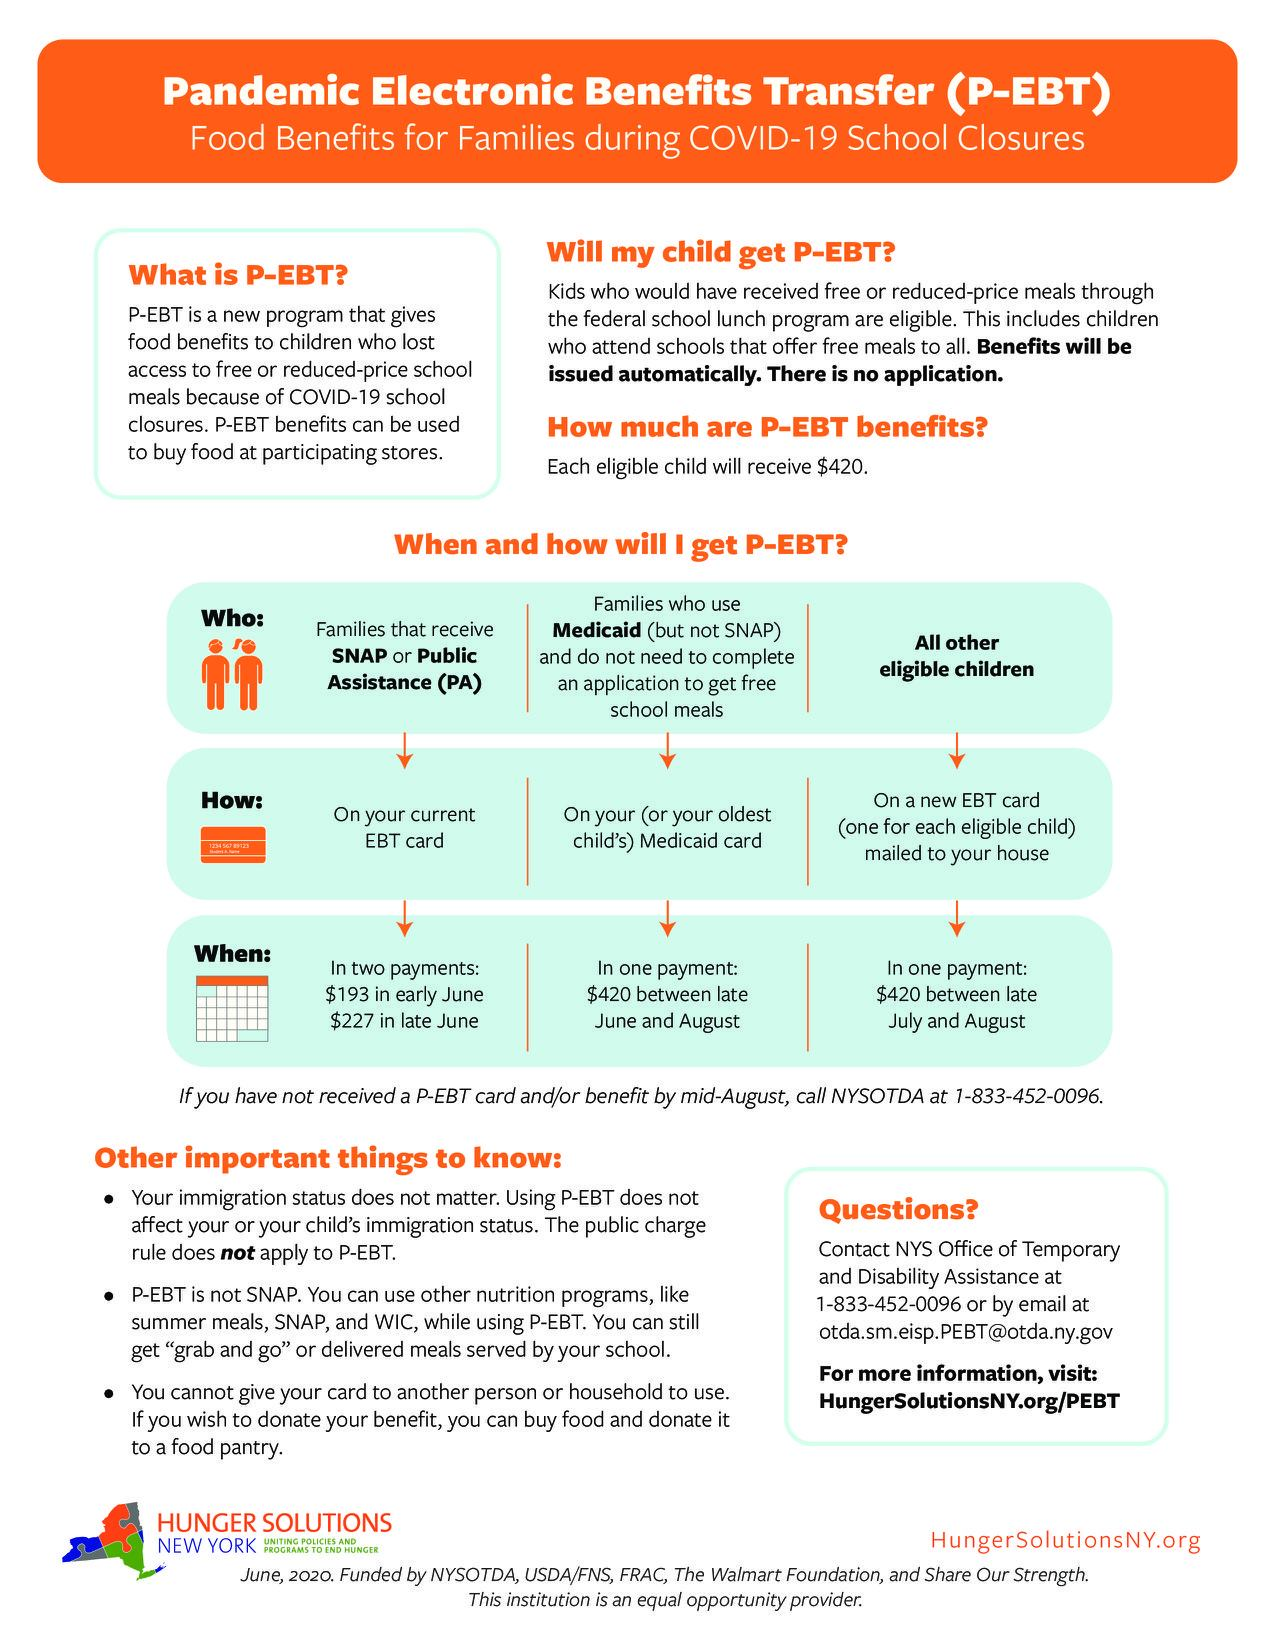 infographic explaining P-EBT benefits